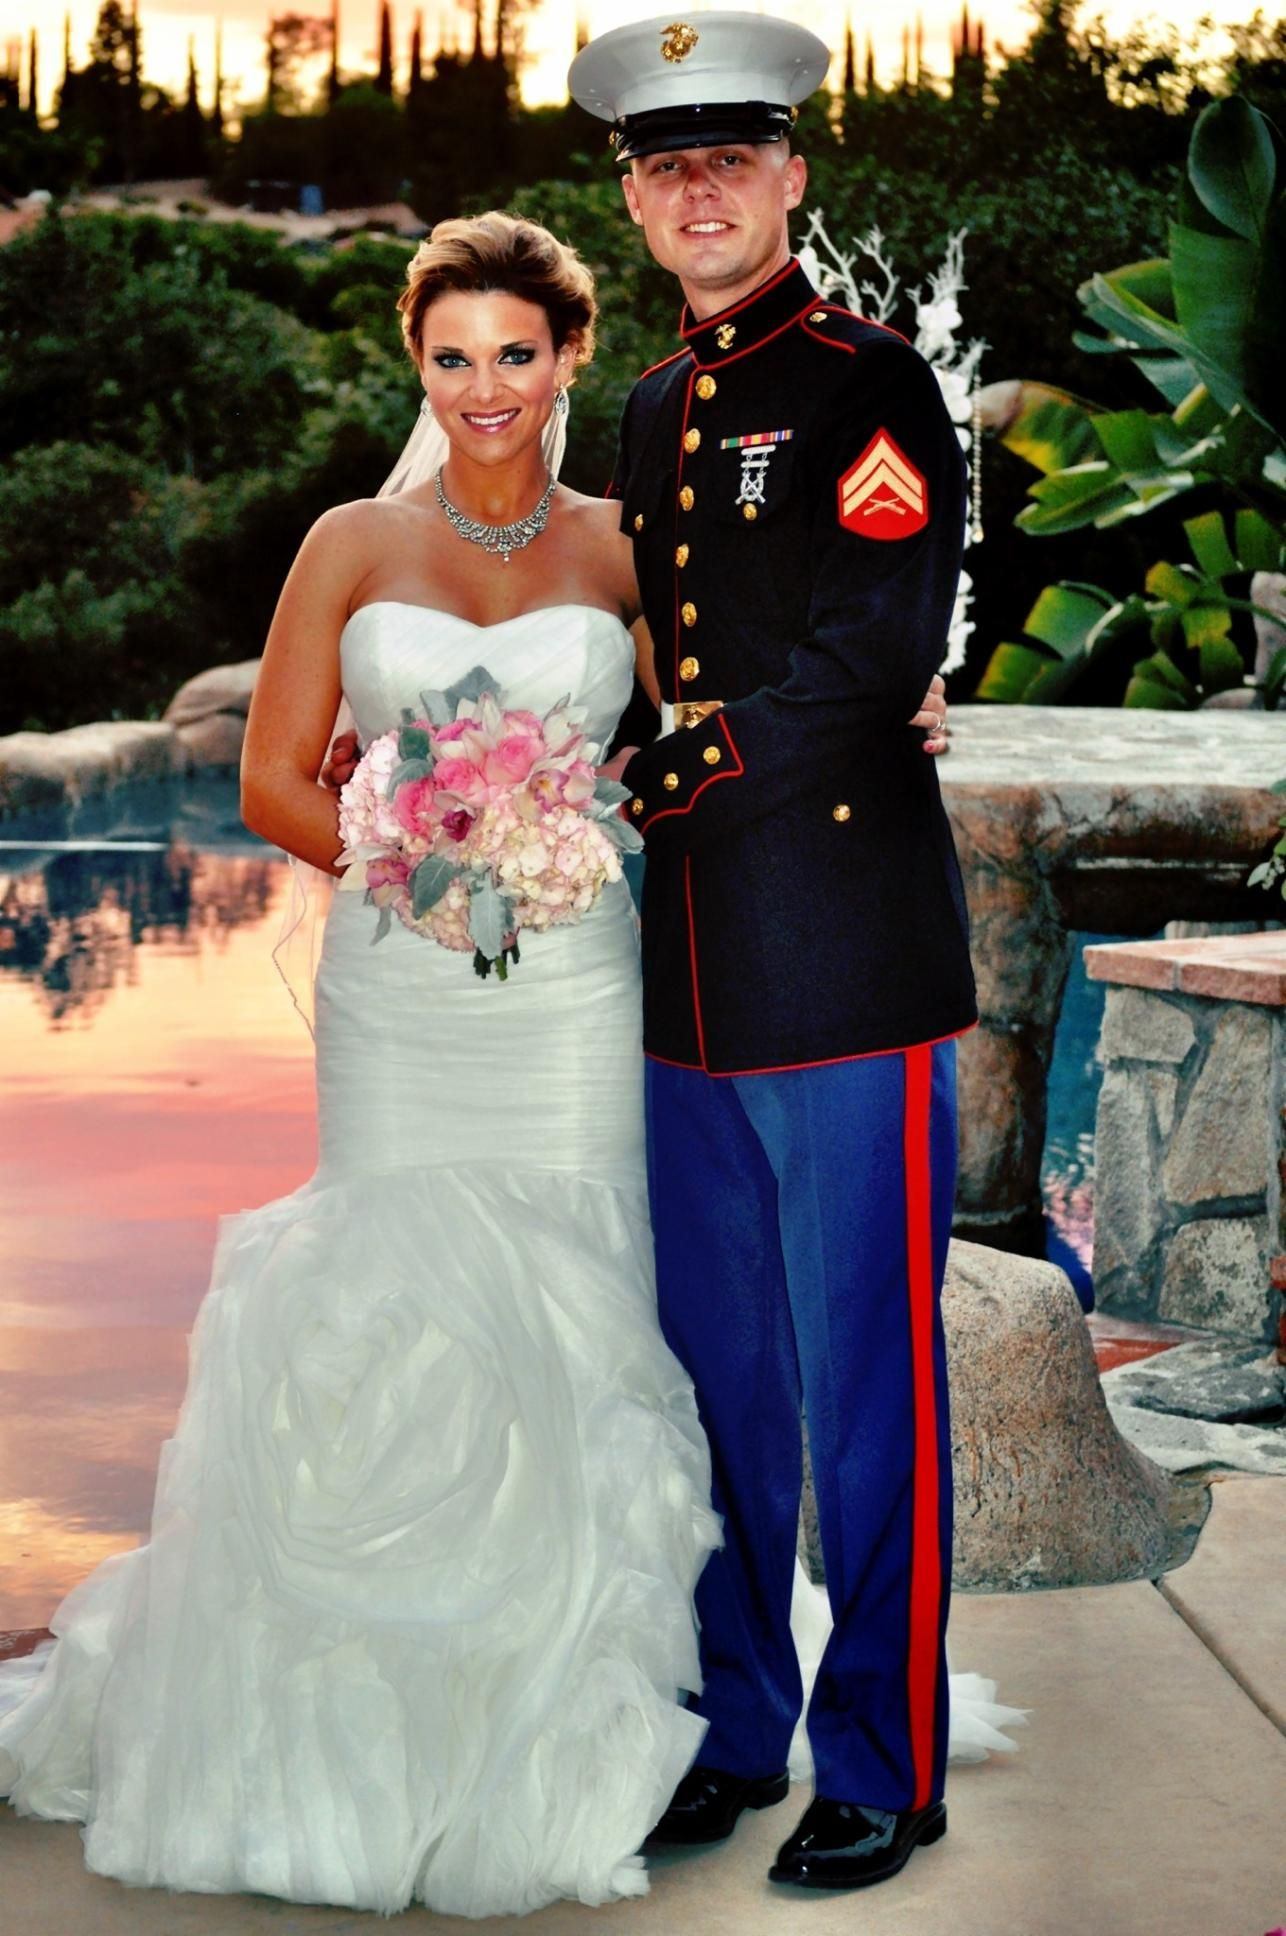 Pin By Aly Chapin On My Wedding Will Include Marines Dress Blues Marine Dress Marine Wedding